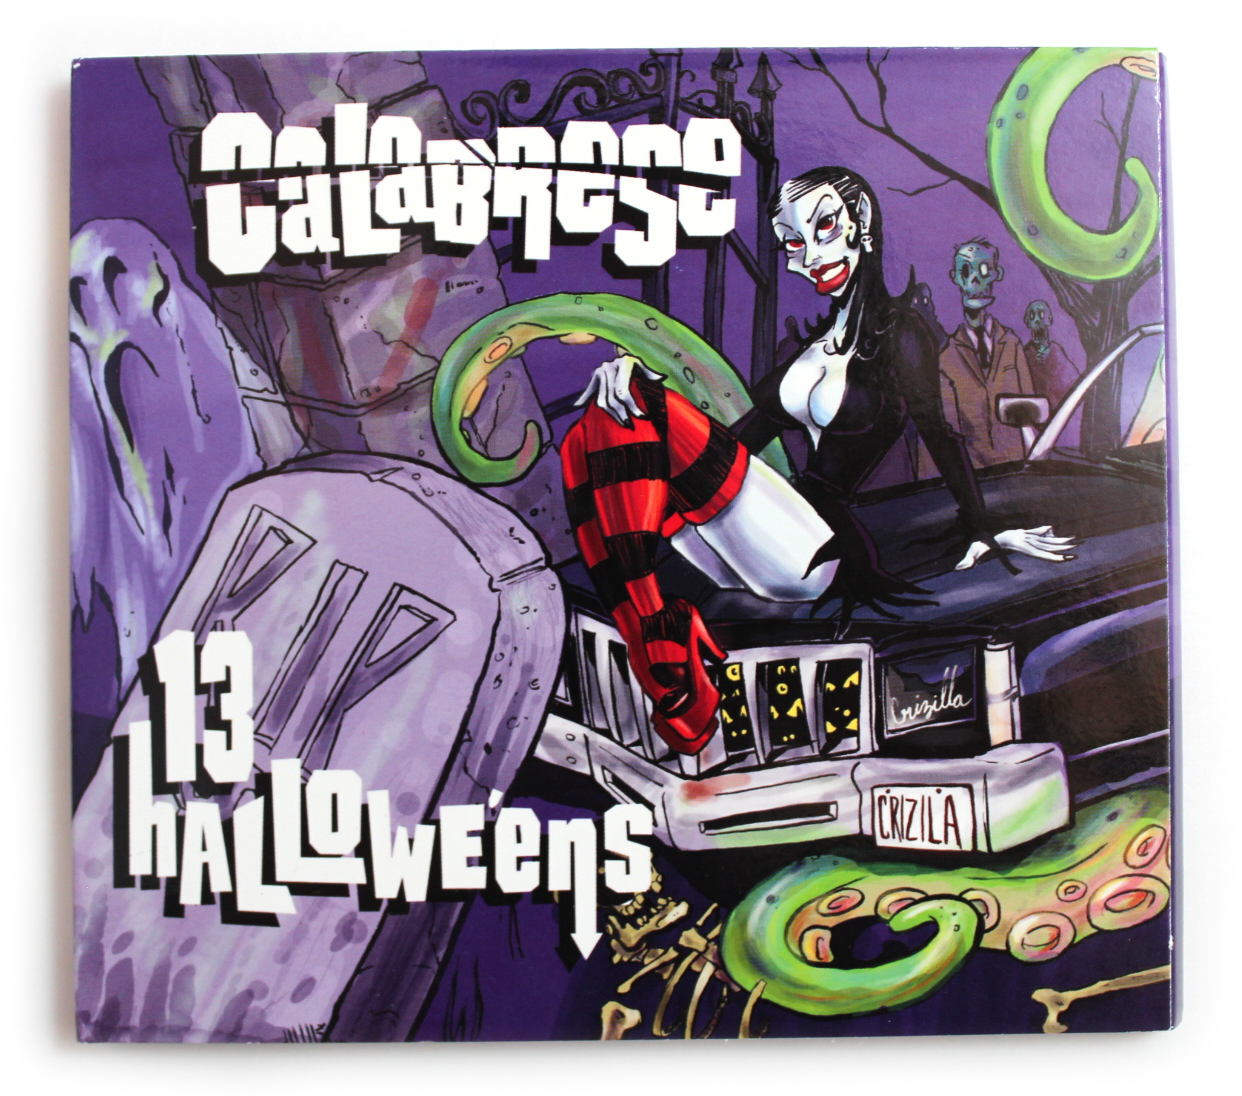 while trying to think about a topic to blog about i thought it would be fun to listen to each song from our first album 13 halloweens and write down all - Calabrese 13 Halloweens